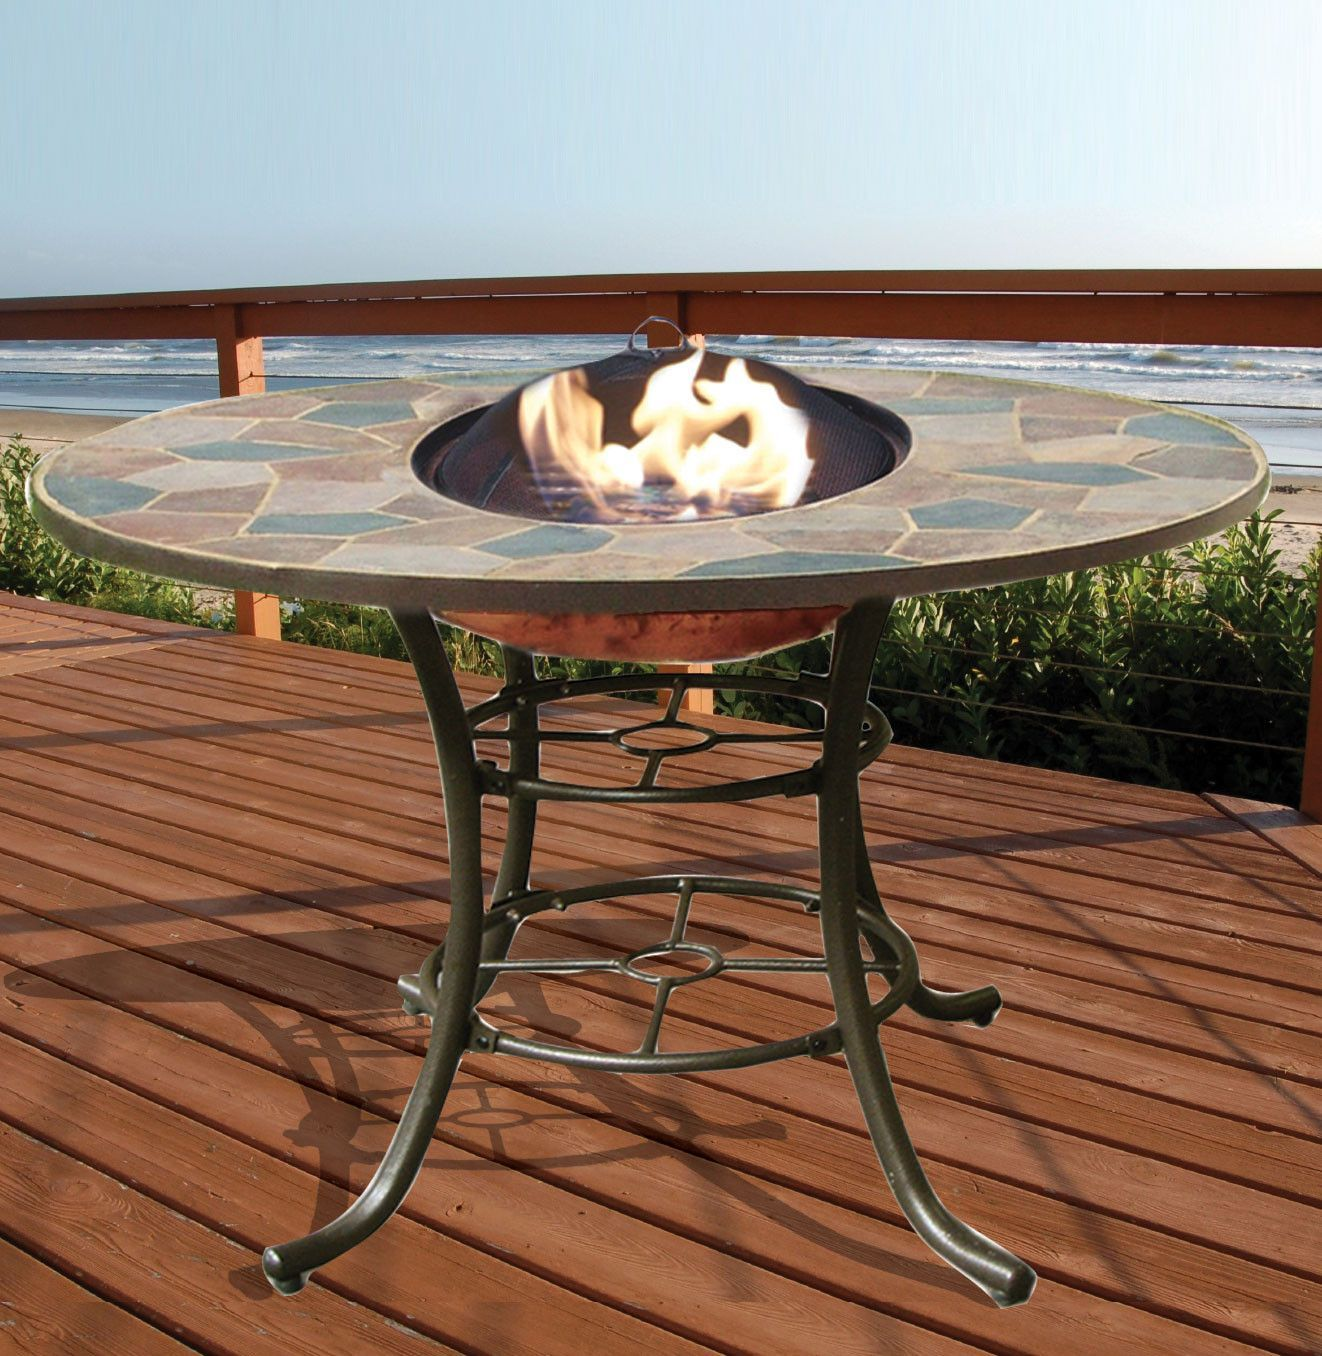 Deeco Rock Canyon 3 In 1 Outdoor Dining Table With Fire Pit And Ice Basin Outdoor Dining Table Concrete Dining Table Outdoor Fire Pit Table